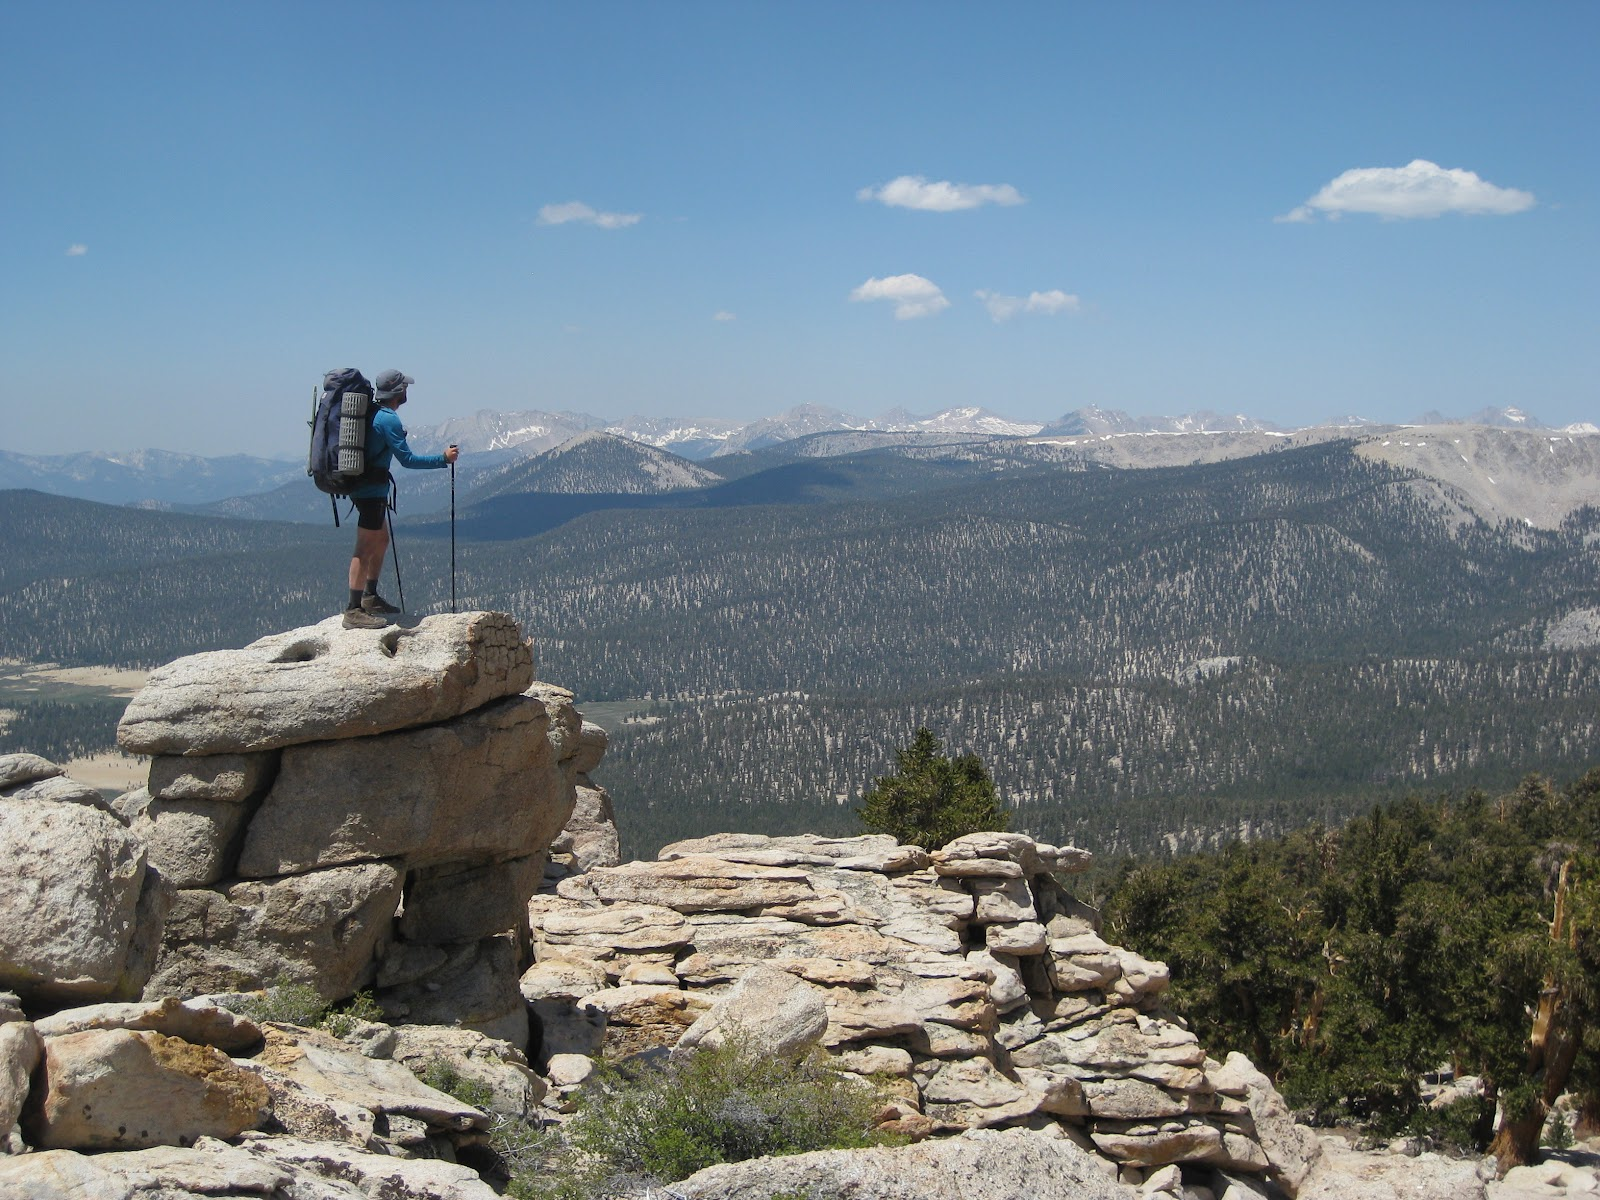 backpack45 on hiking the trail pacific crest trail - HD1600×1200